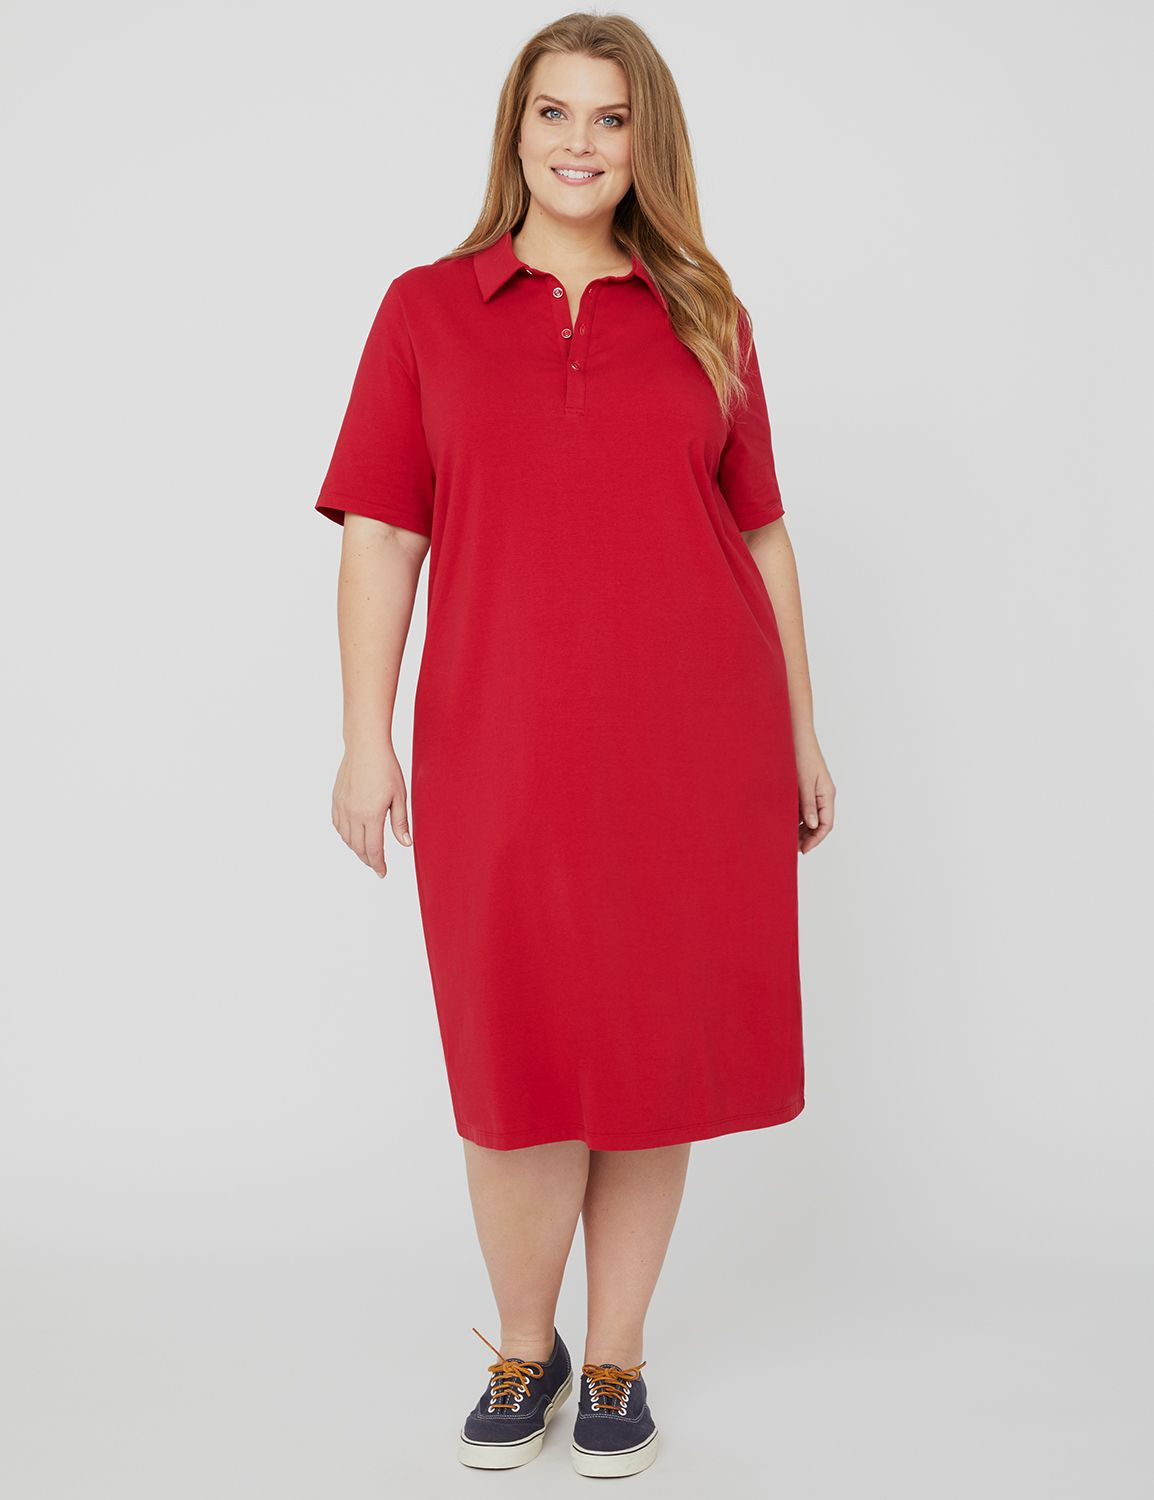 Suprema Polo Dress 1090899 Suprema Polo Dress MP-300105853